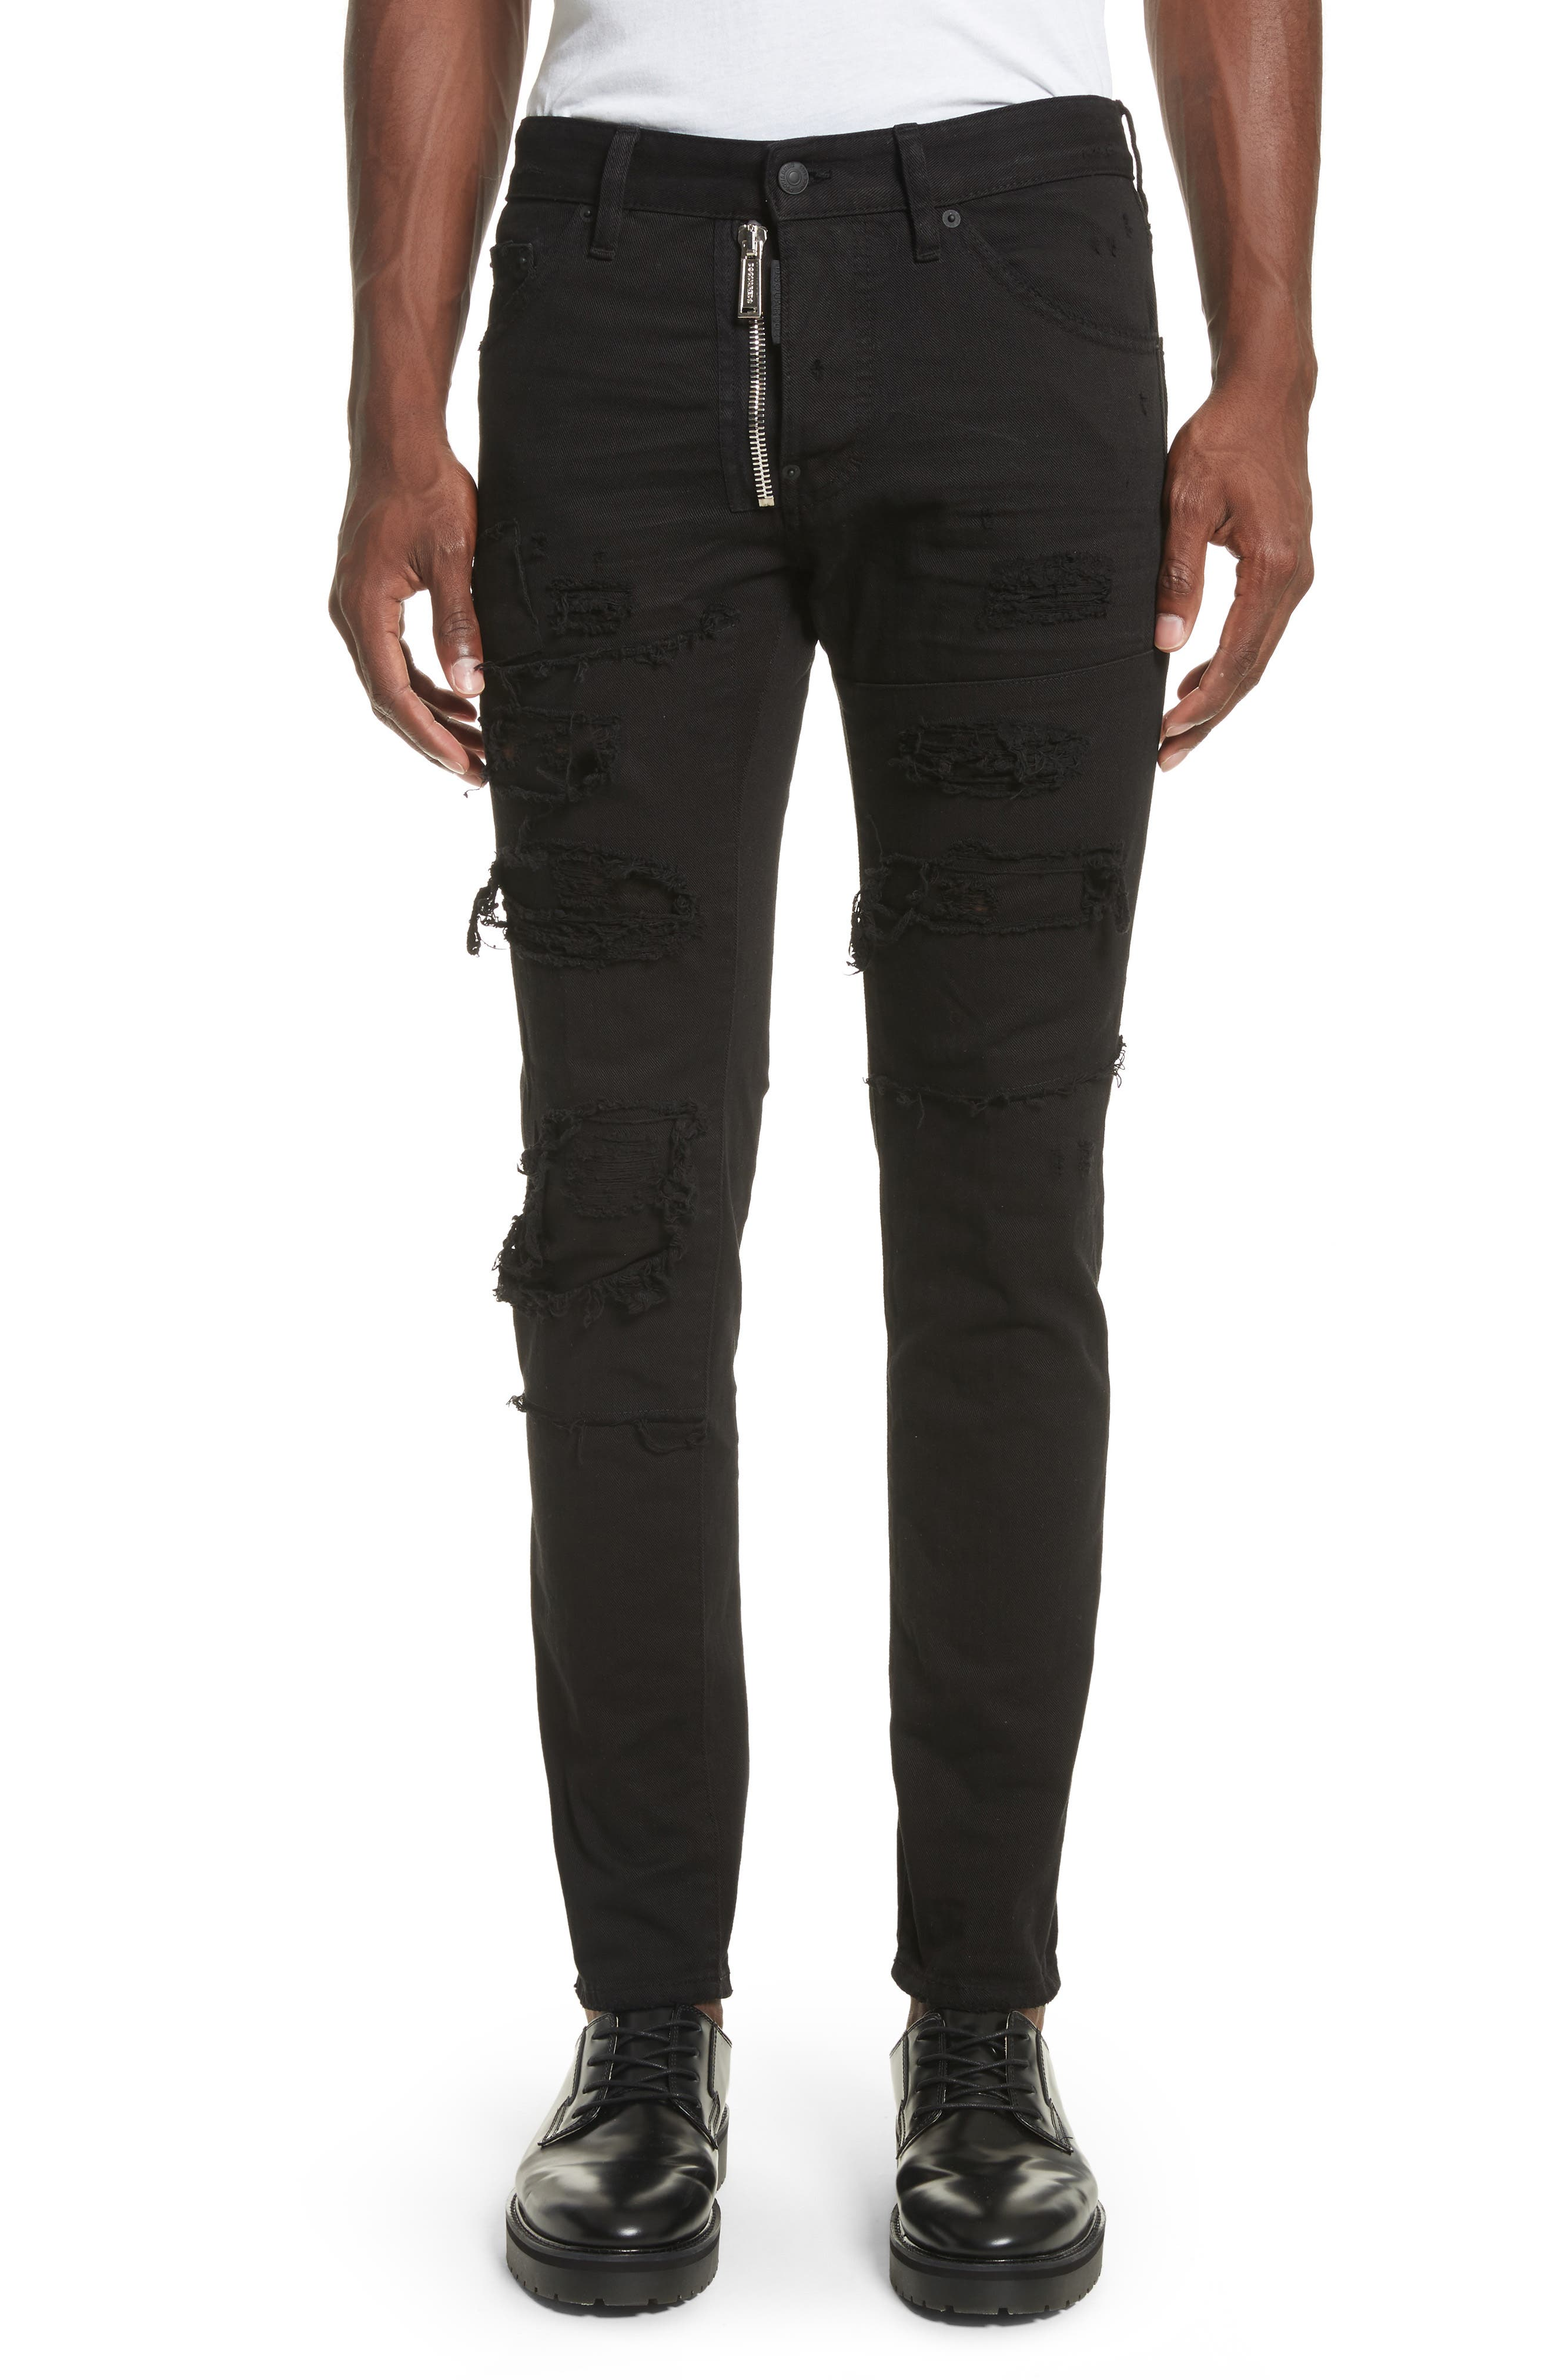 Ripped Washed Cool Guy Jeans,                             Main thumbnail 1, color,                             Black